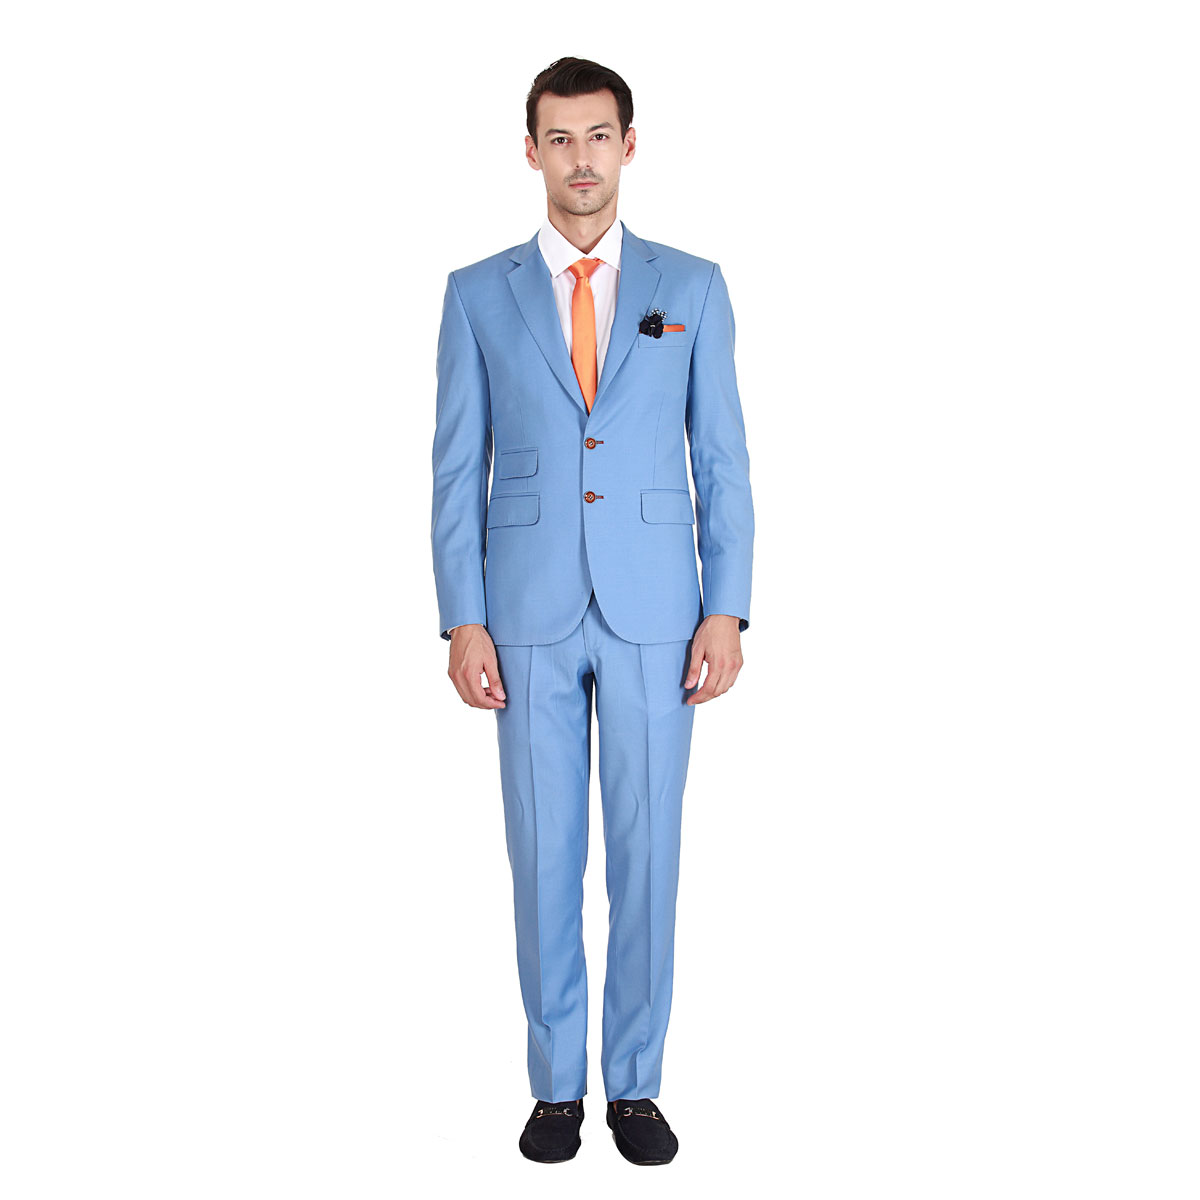 Premium Bespoke Suits Online. Best tailored suits. Best custom